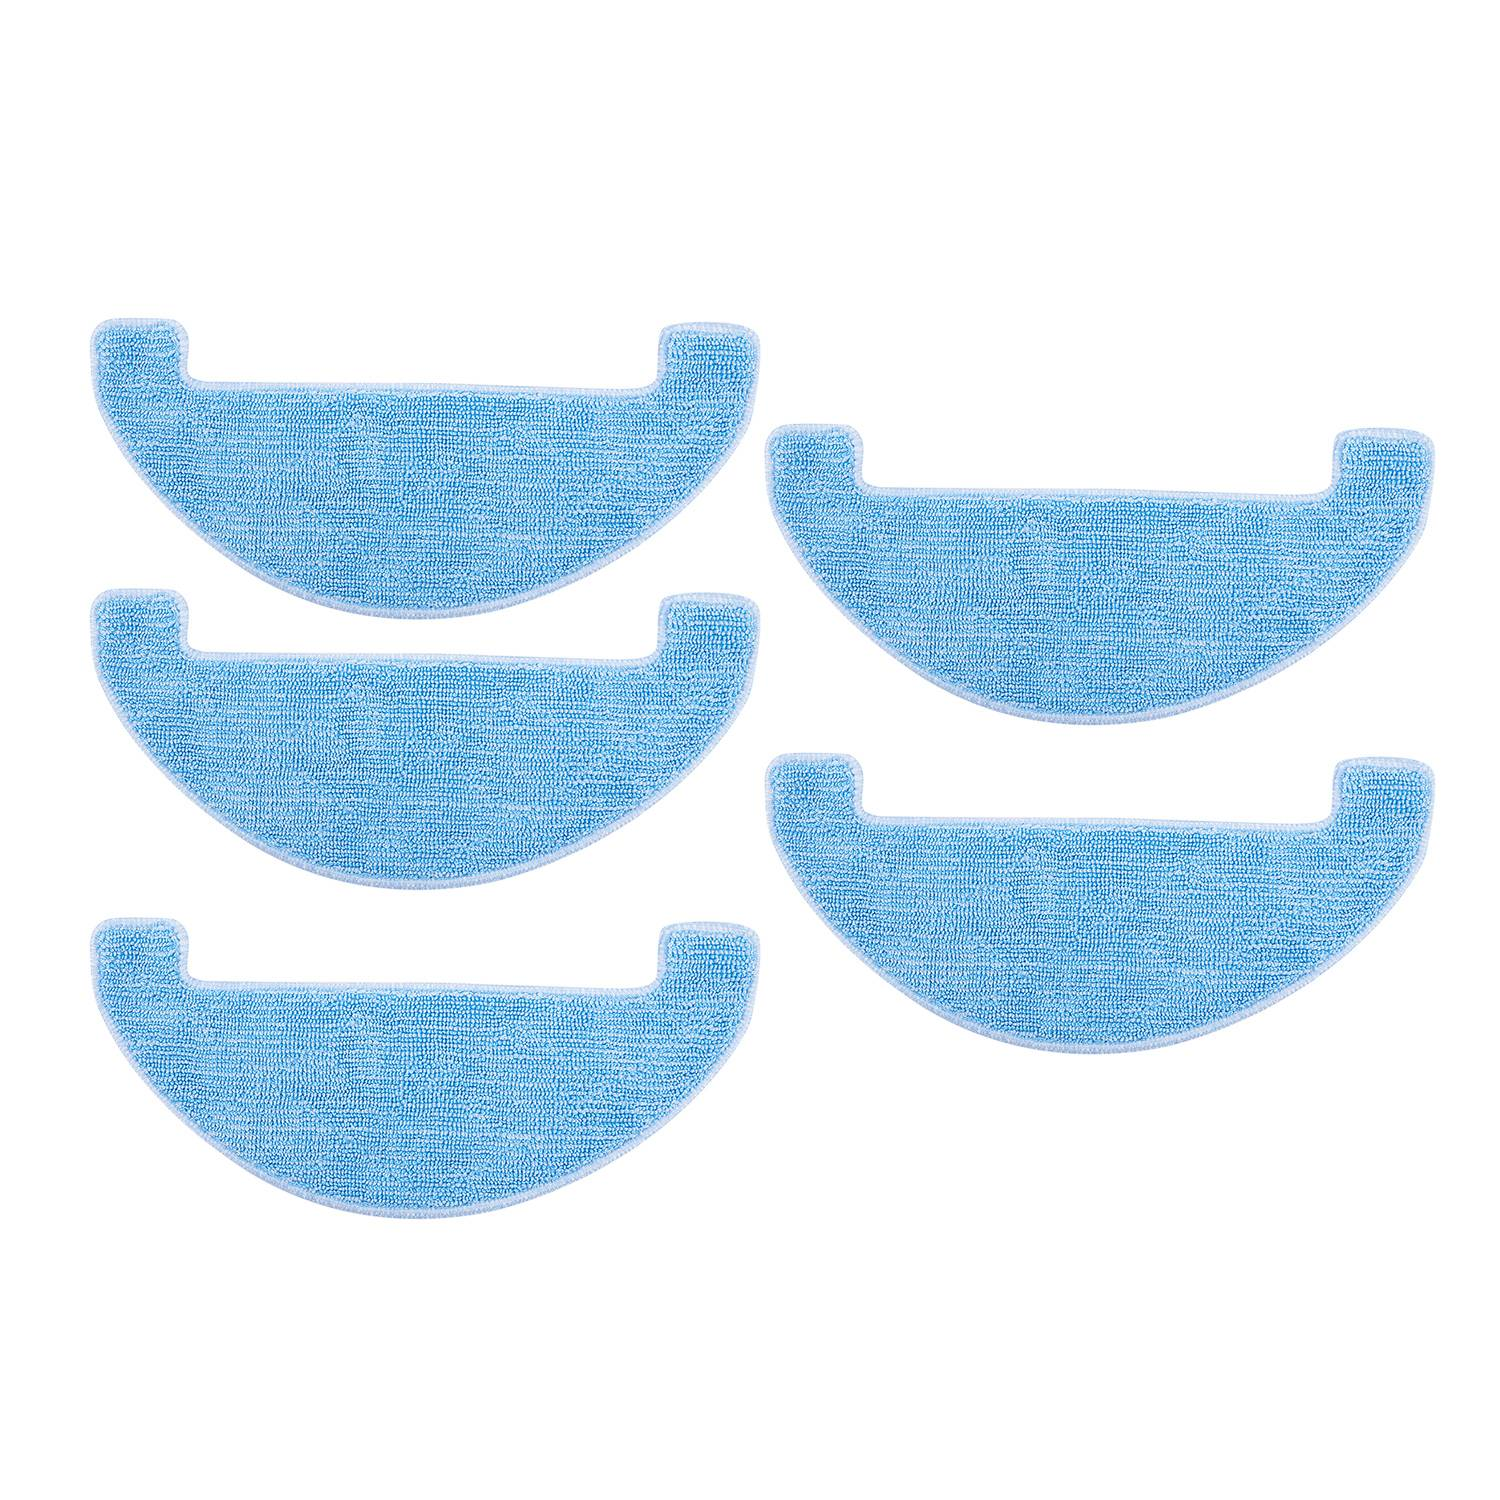 EAS-5Pcs Replacement Cleaning Pad Clean Mop For Ilife V80,V8S,X800,X750,X787,X785 Robotic Vacuum Cleaner Parts AccessoriesEAS-5Pcs Replacement Cleaning Pad Clean Mop For Ilife V80,V8S,X800,X750,X787,X785 Robotic Vacuum Cleaner Parts Accessories